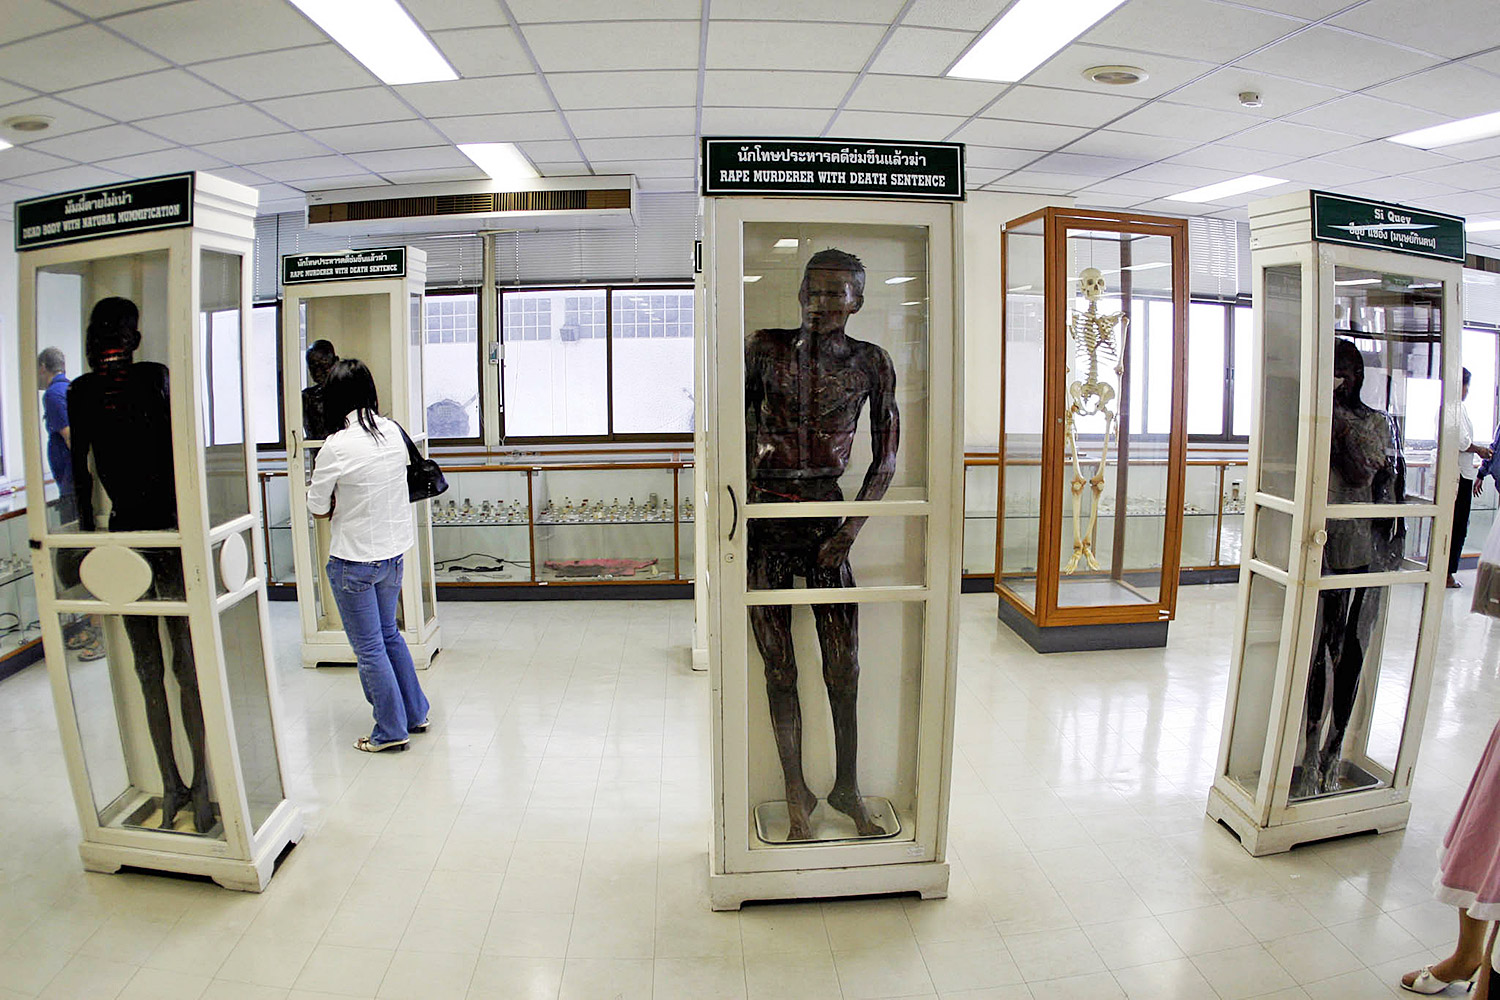 This file photo shows preserved human bodies at a museum at Siriraj Hospital, with the body of 'cannibal' Si Quey in the right showcase. (Photo by Patarachai Preechapanit)